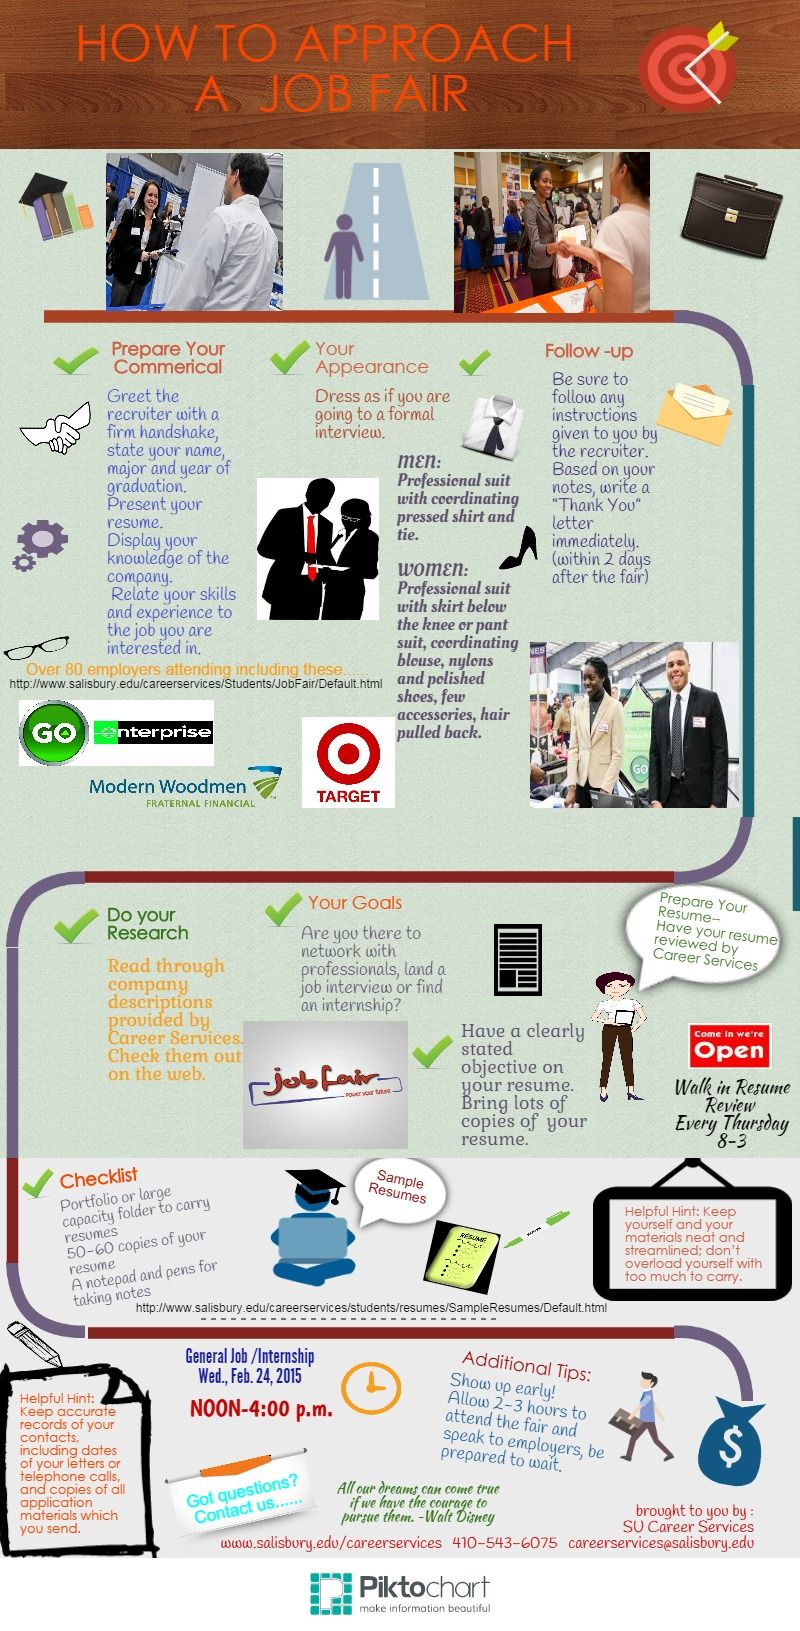 How To Approach A Job Fair Piktochart Infographic Editor  Advice